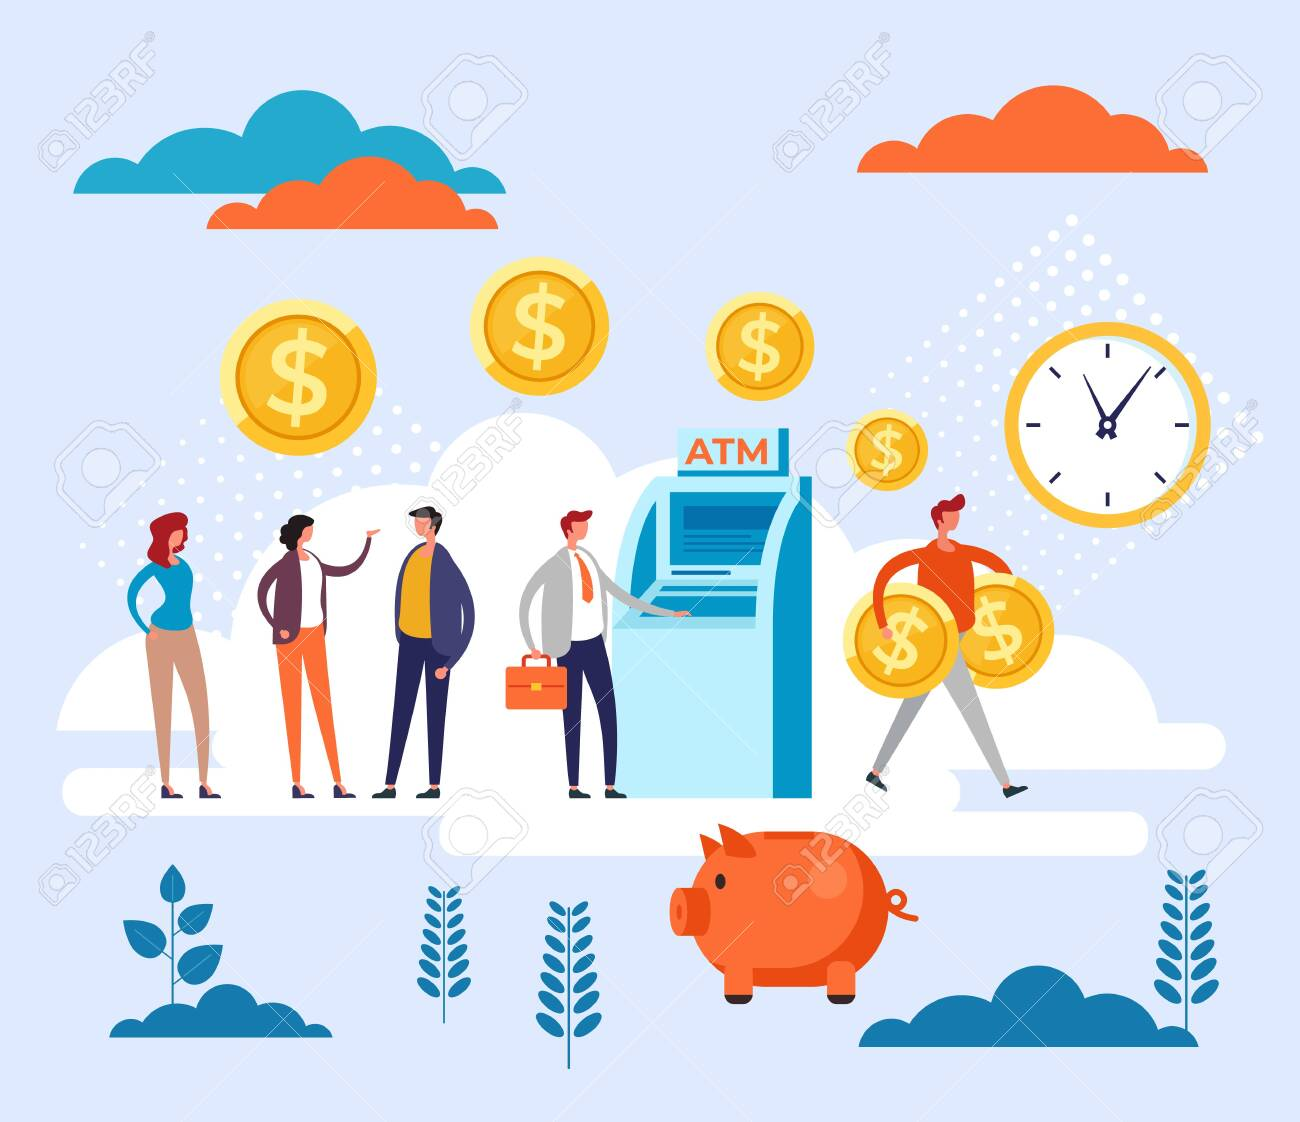 People waiting in line ATM transaction. Banking queue concept. Vector flat cartoon graphic design illustration - 134194338